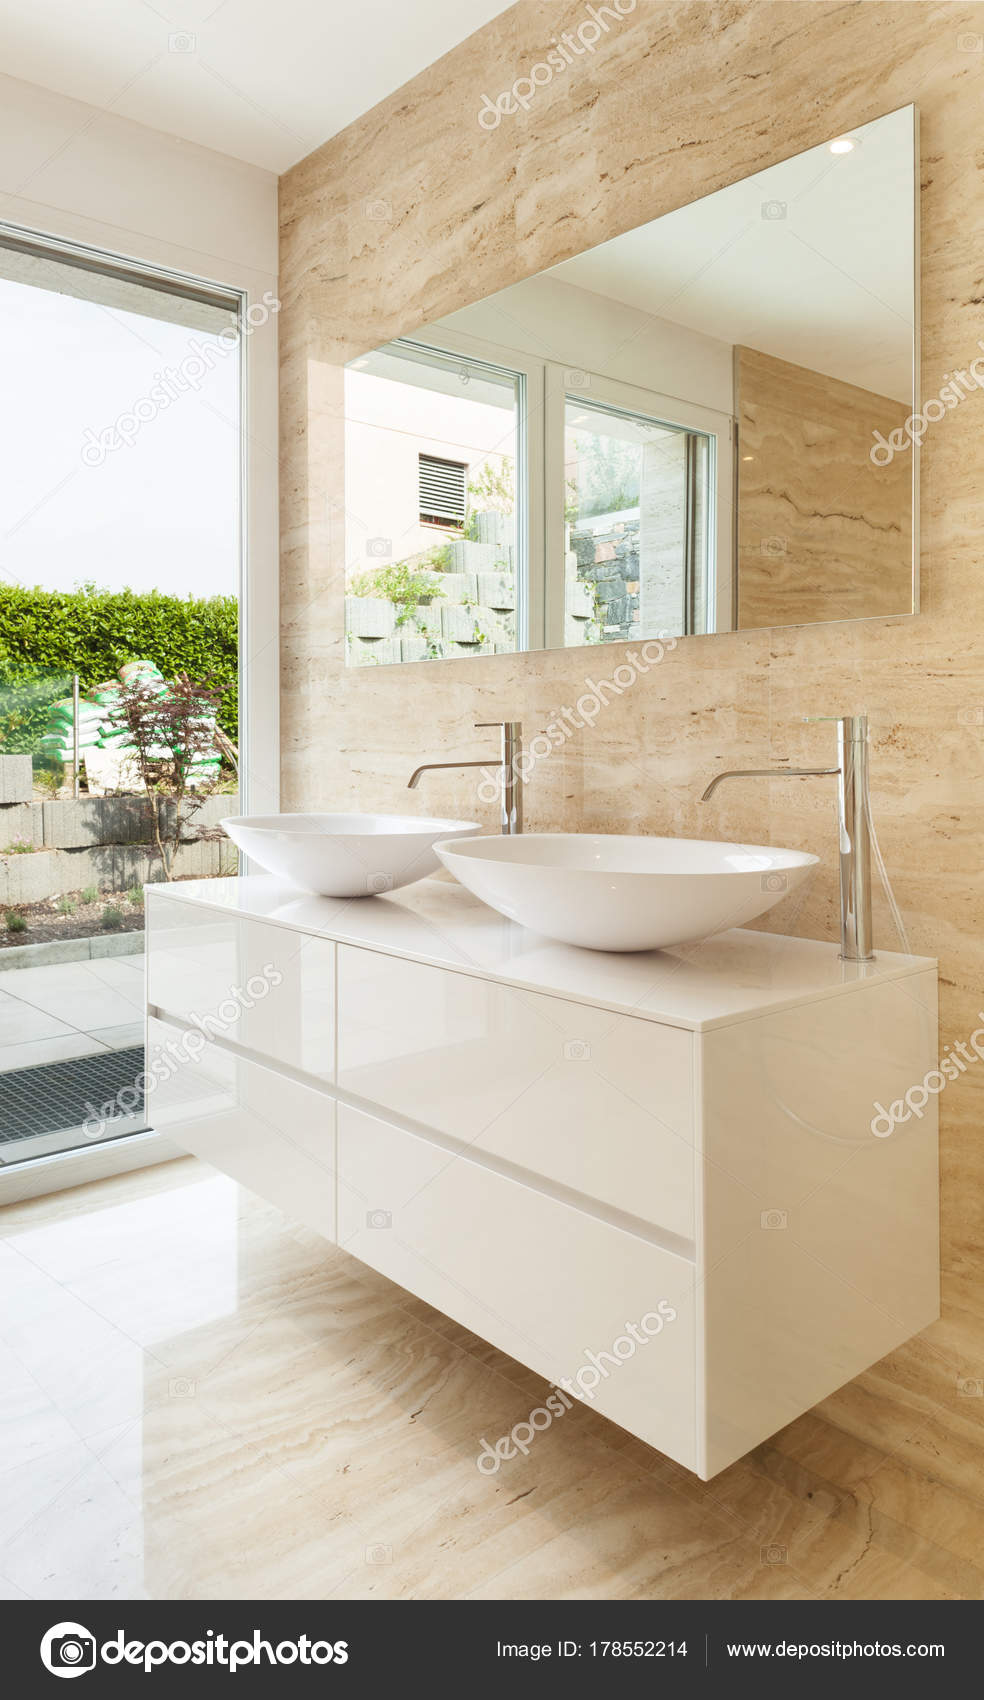 https://st3.depositphotos.com/2018053/17855/i/1600/depositphotos_178552214-stock-photo-nice-modern-bathroom-marble-walls.jpg